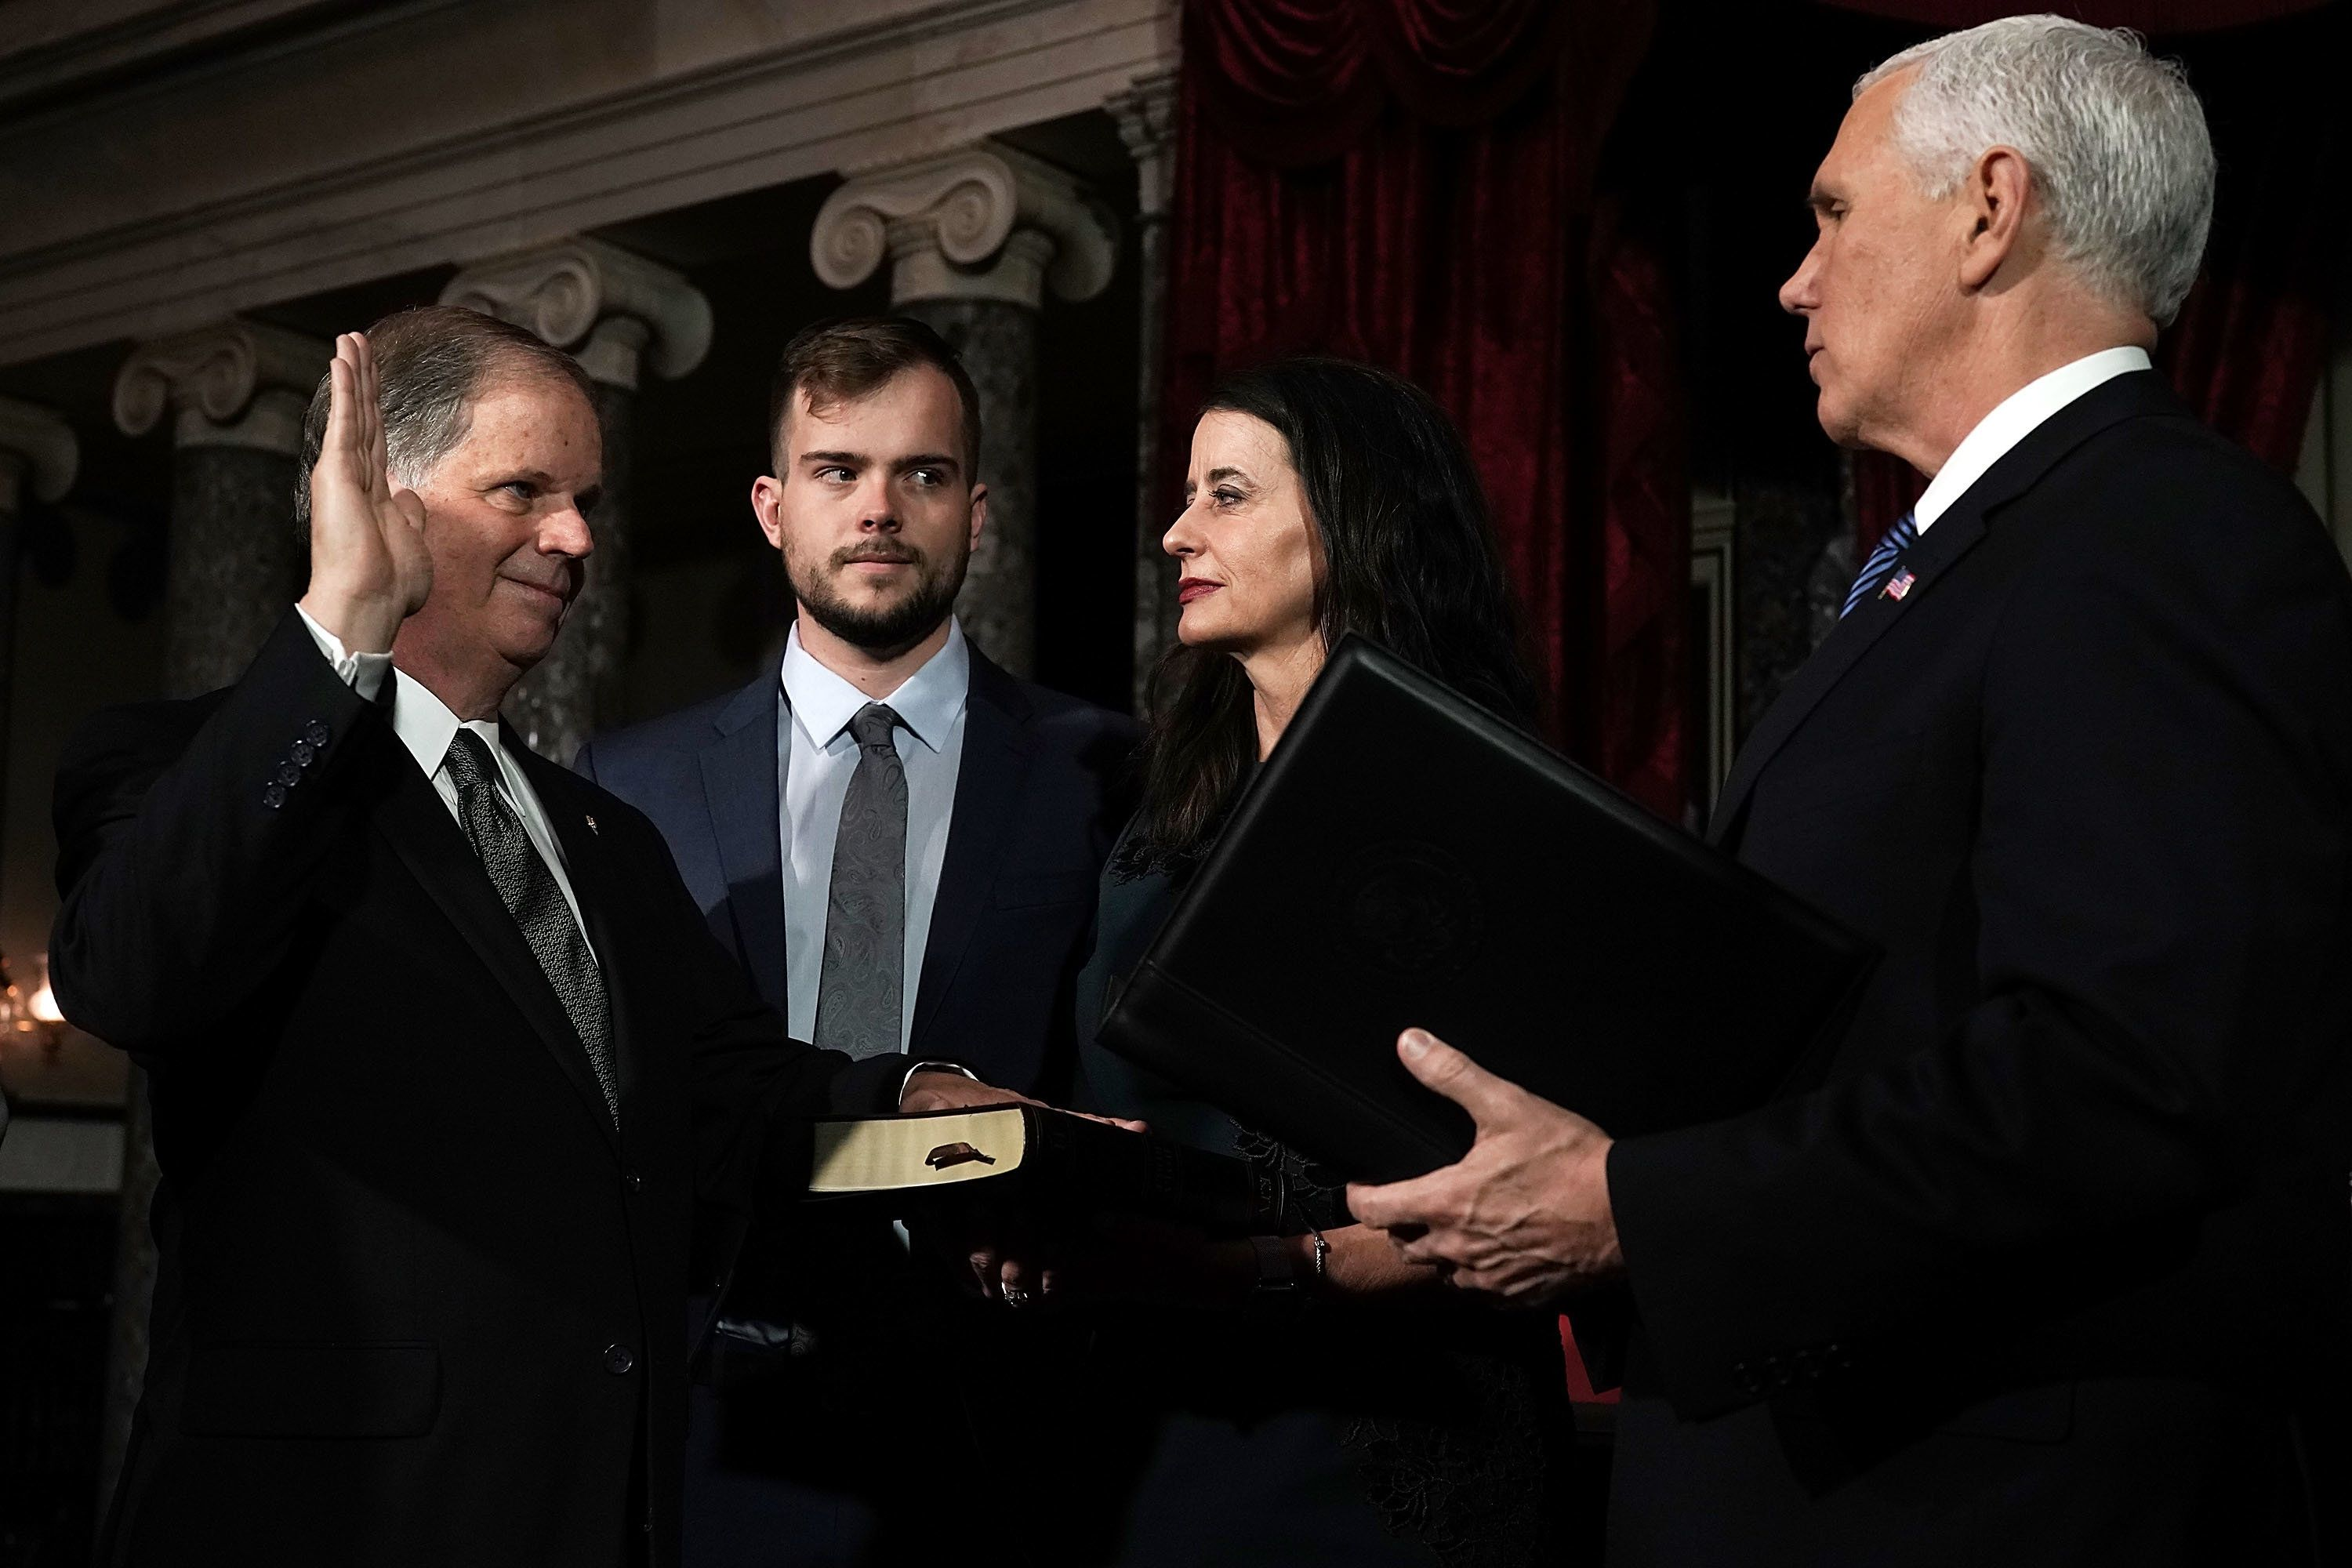 Doug Jones's son staring down Mike Pence goes viral